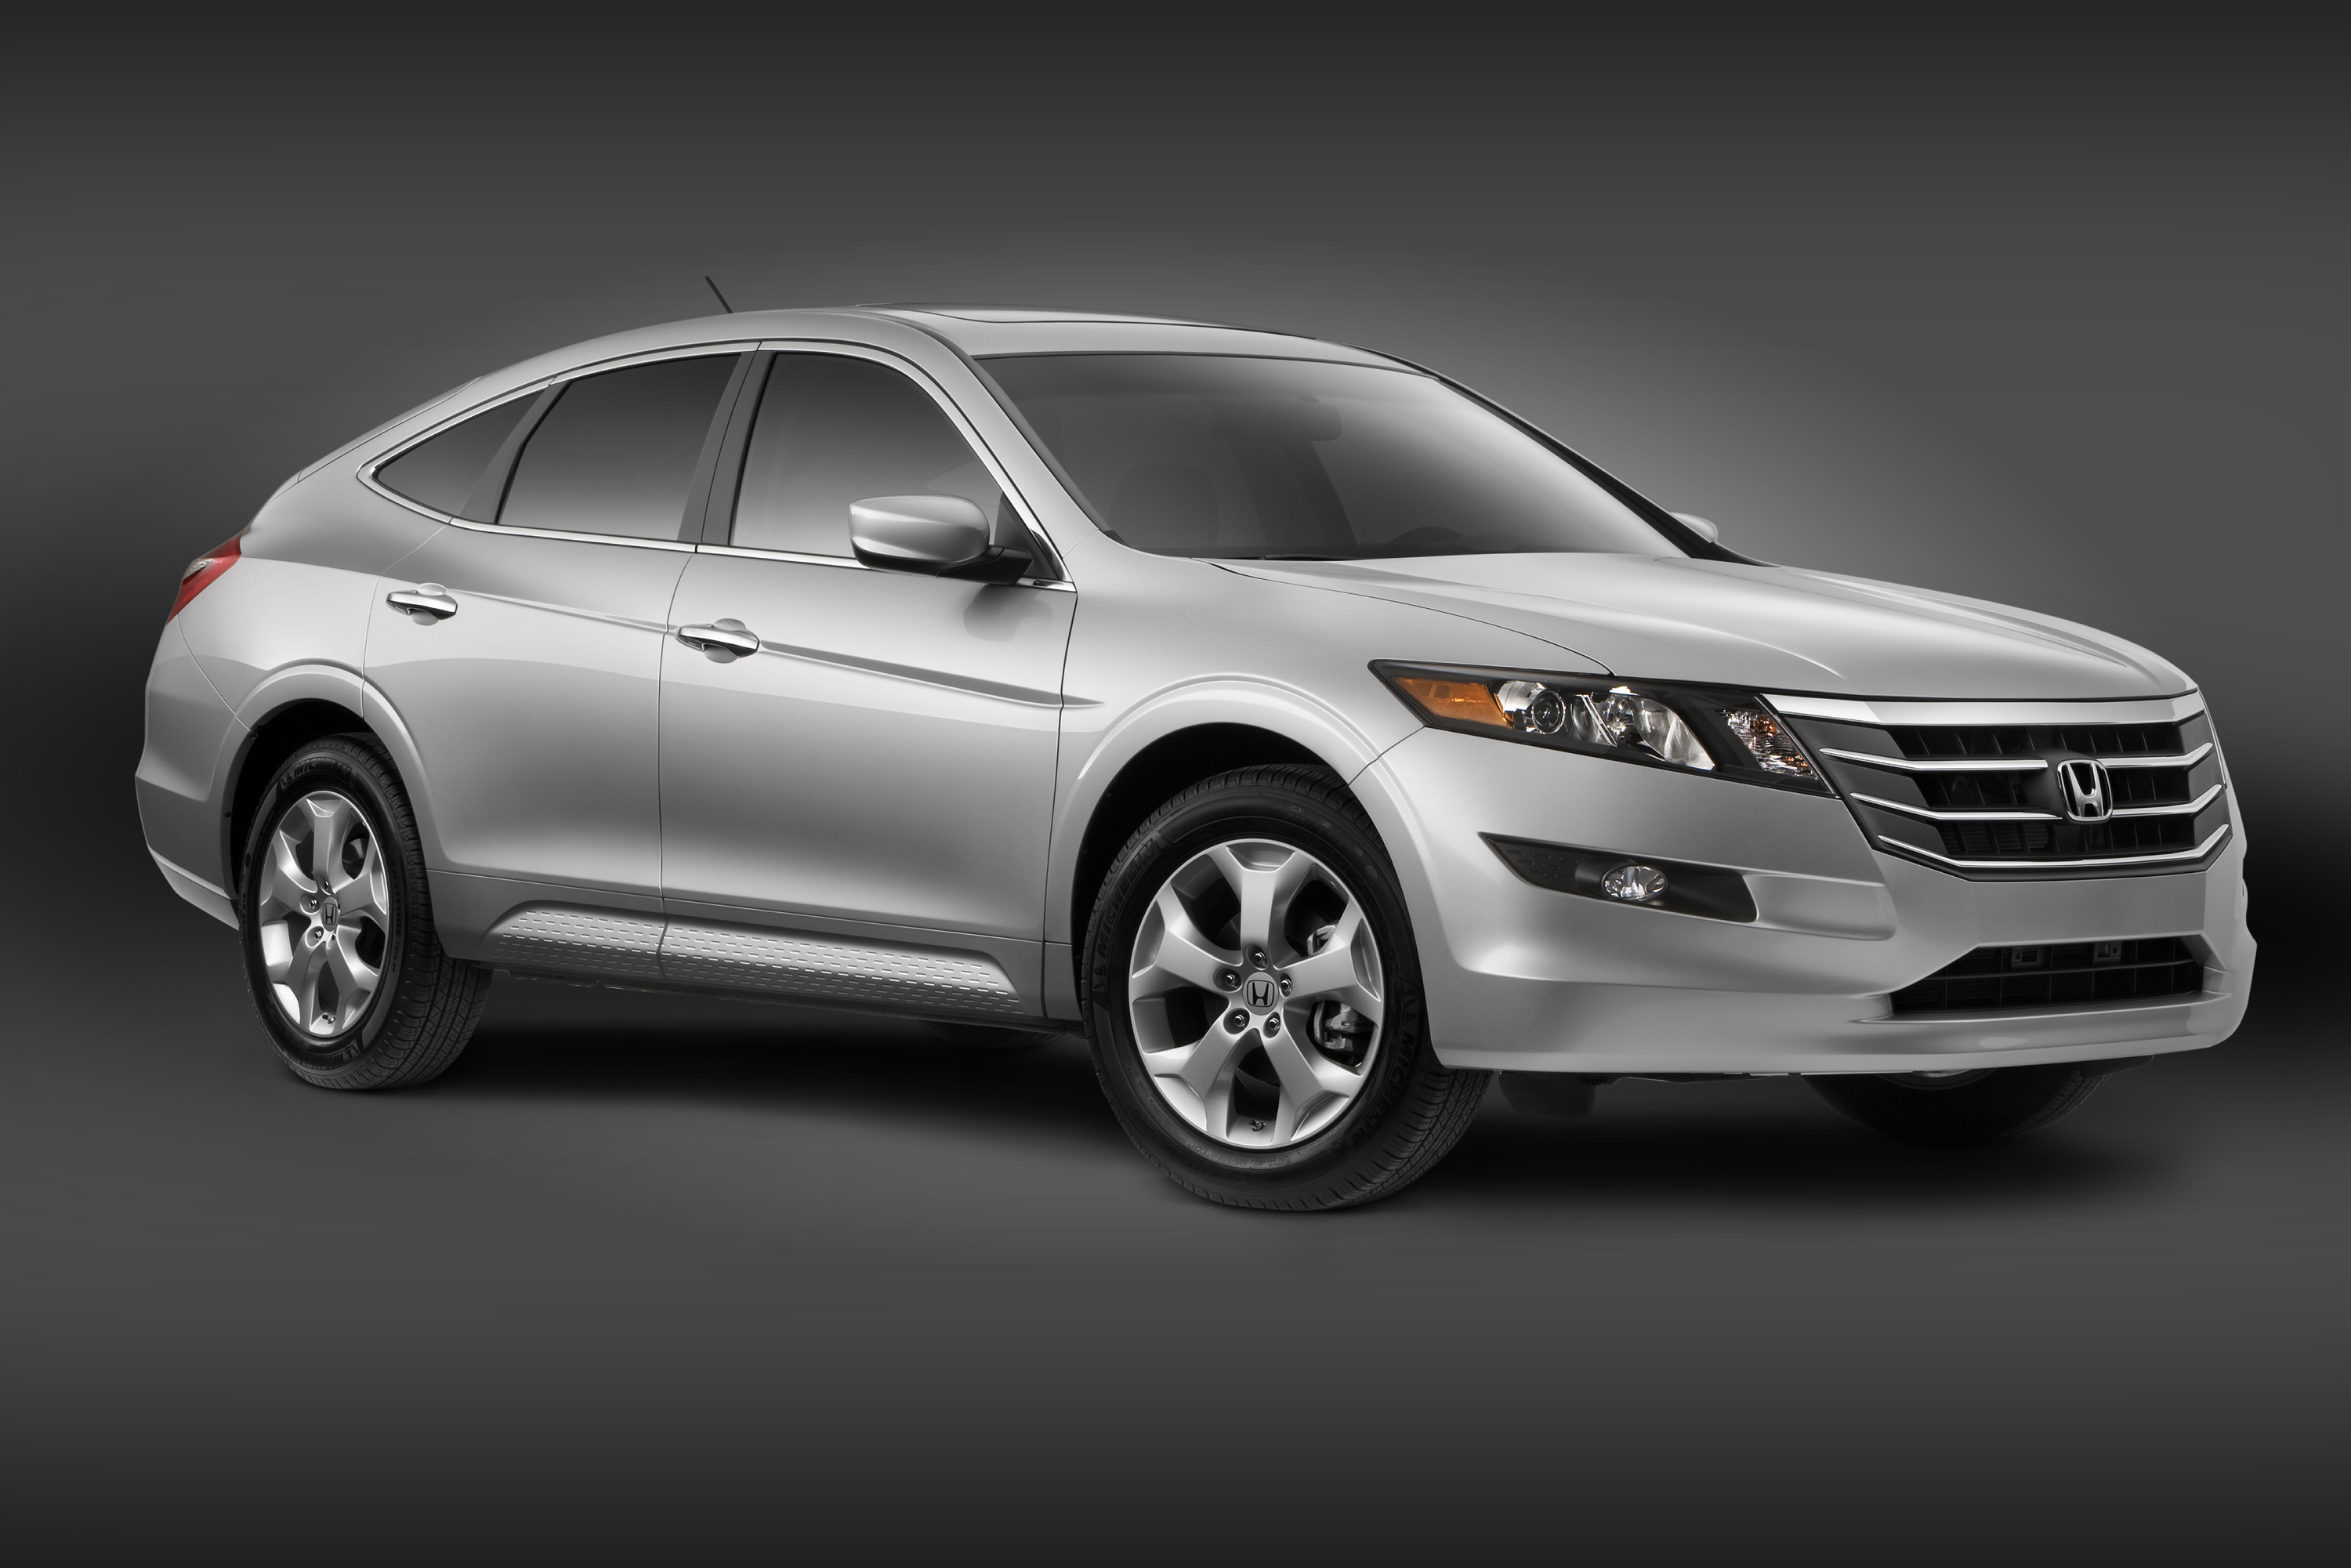 accord file l honda wiki commons crosstour used ex front wikimedia